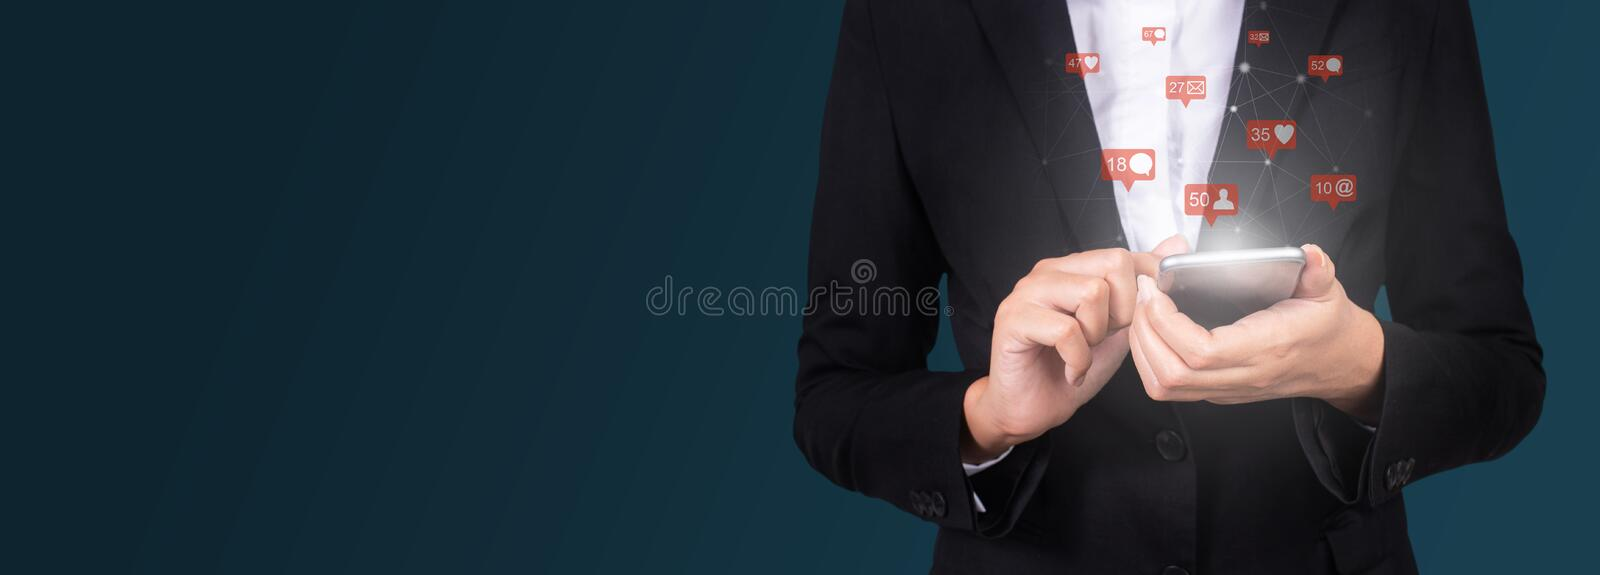 Businesswoman using mobile smart phone, Social, media, Marketing royalty free stock photos